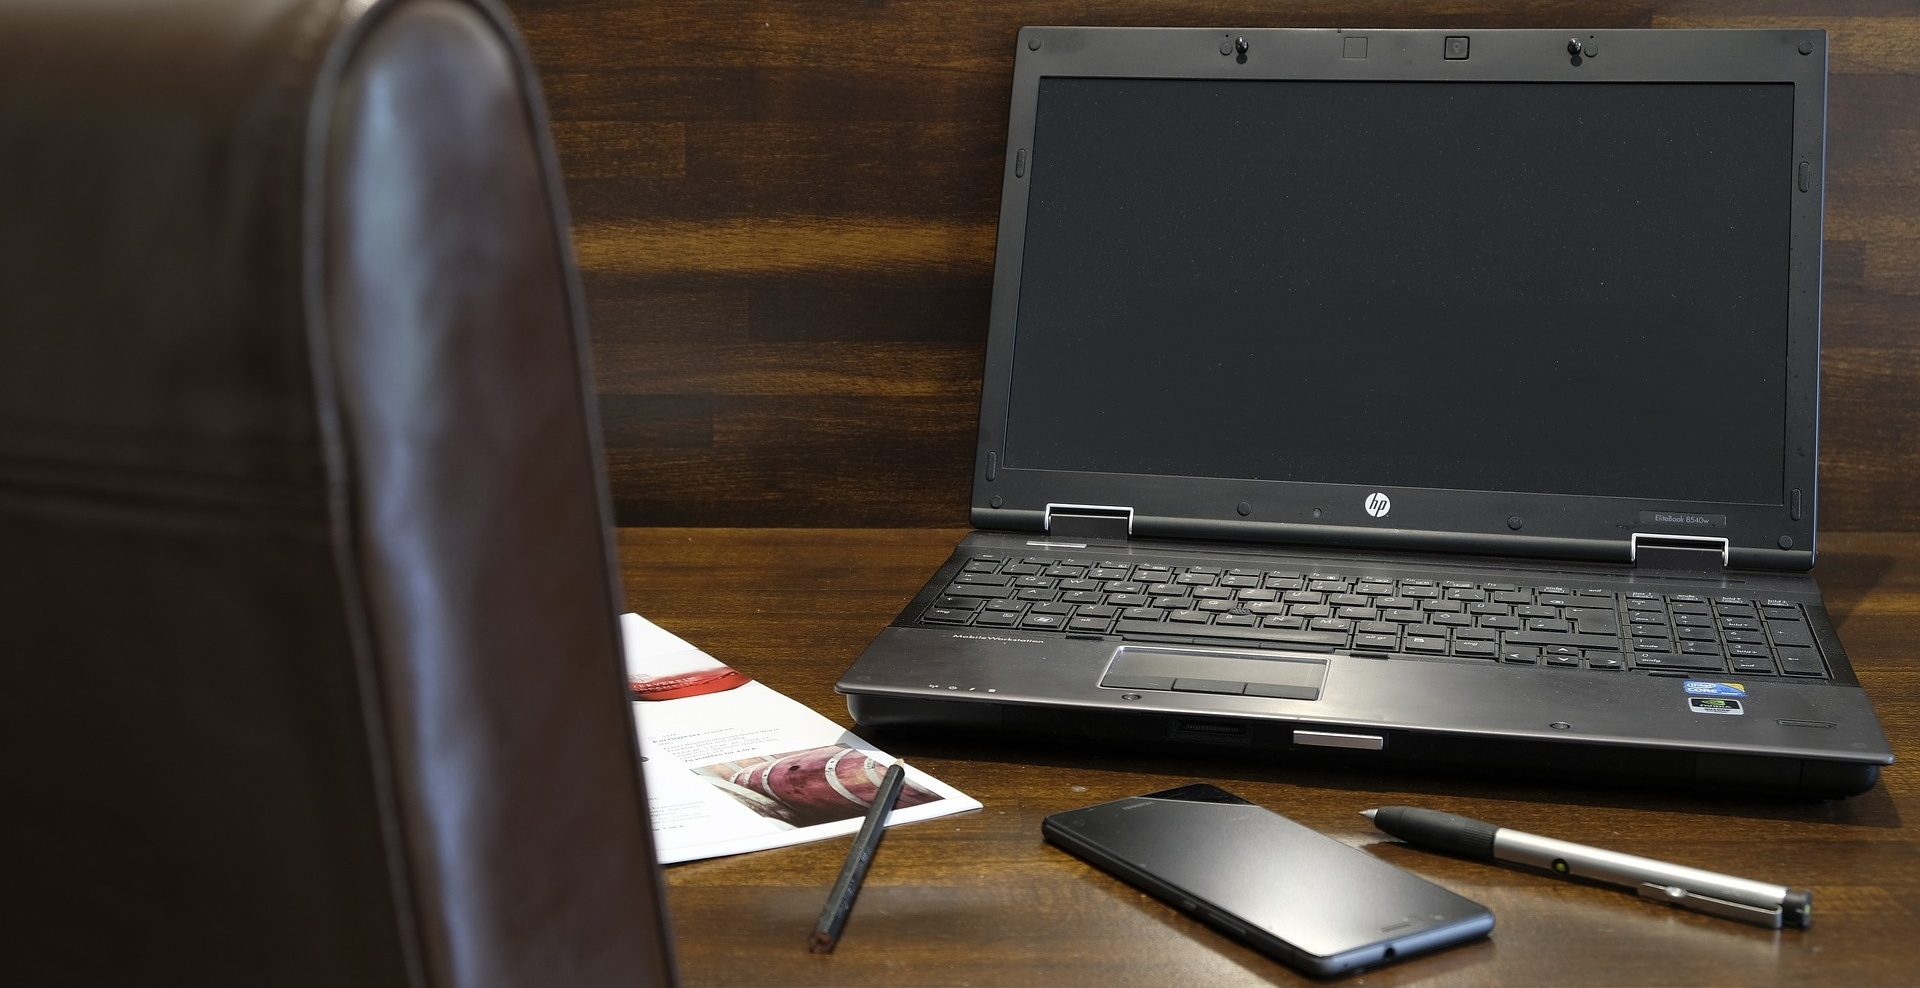 laptop and mobile phone on a desk